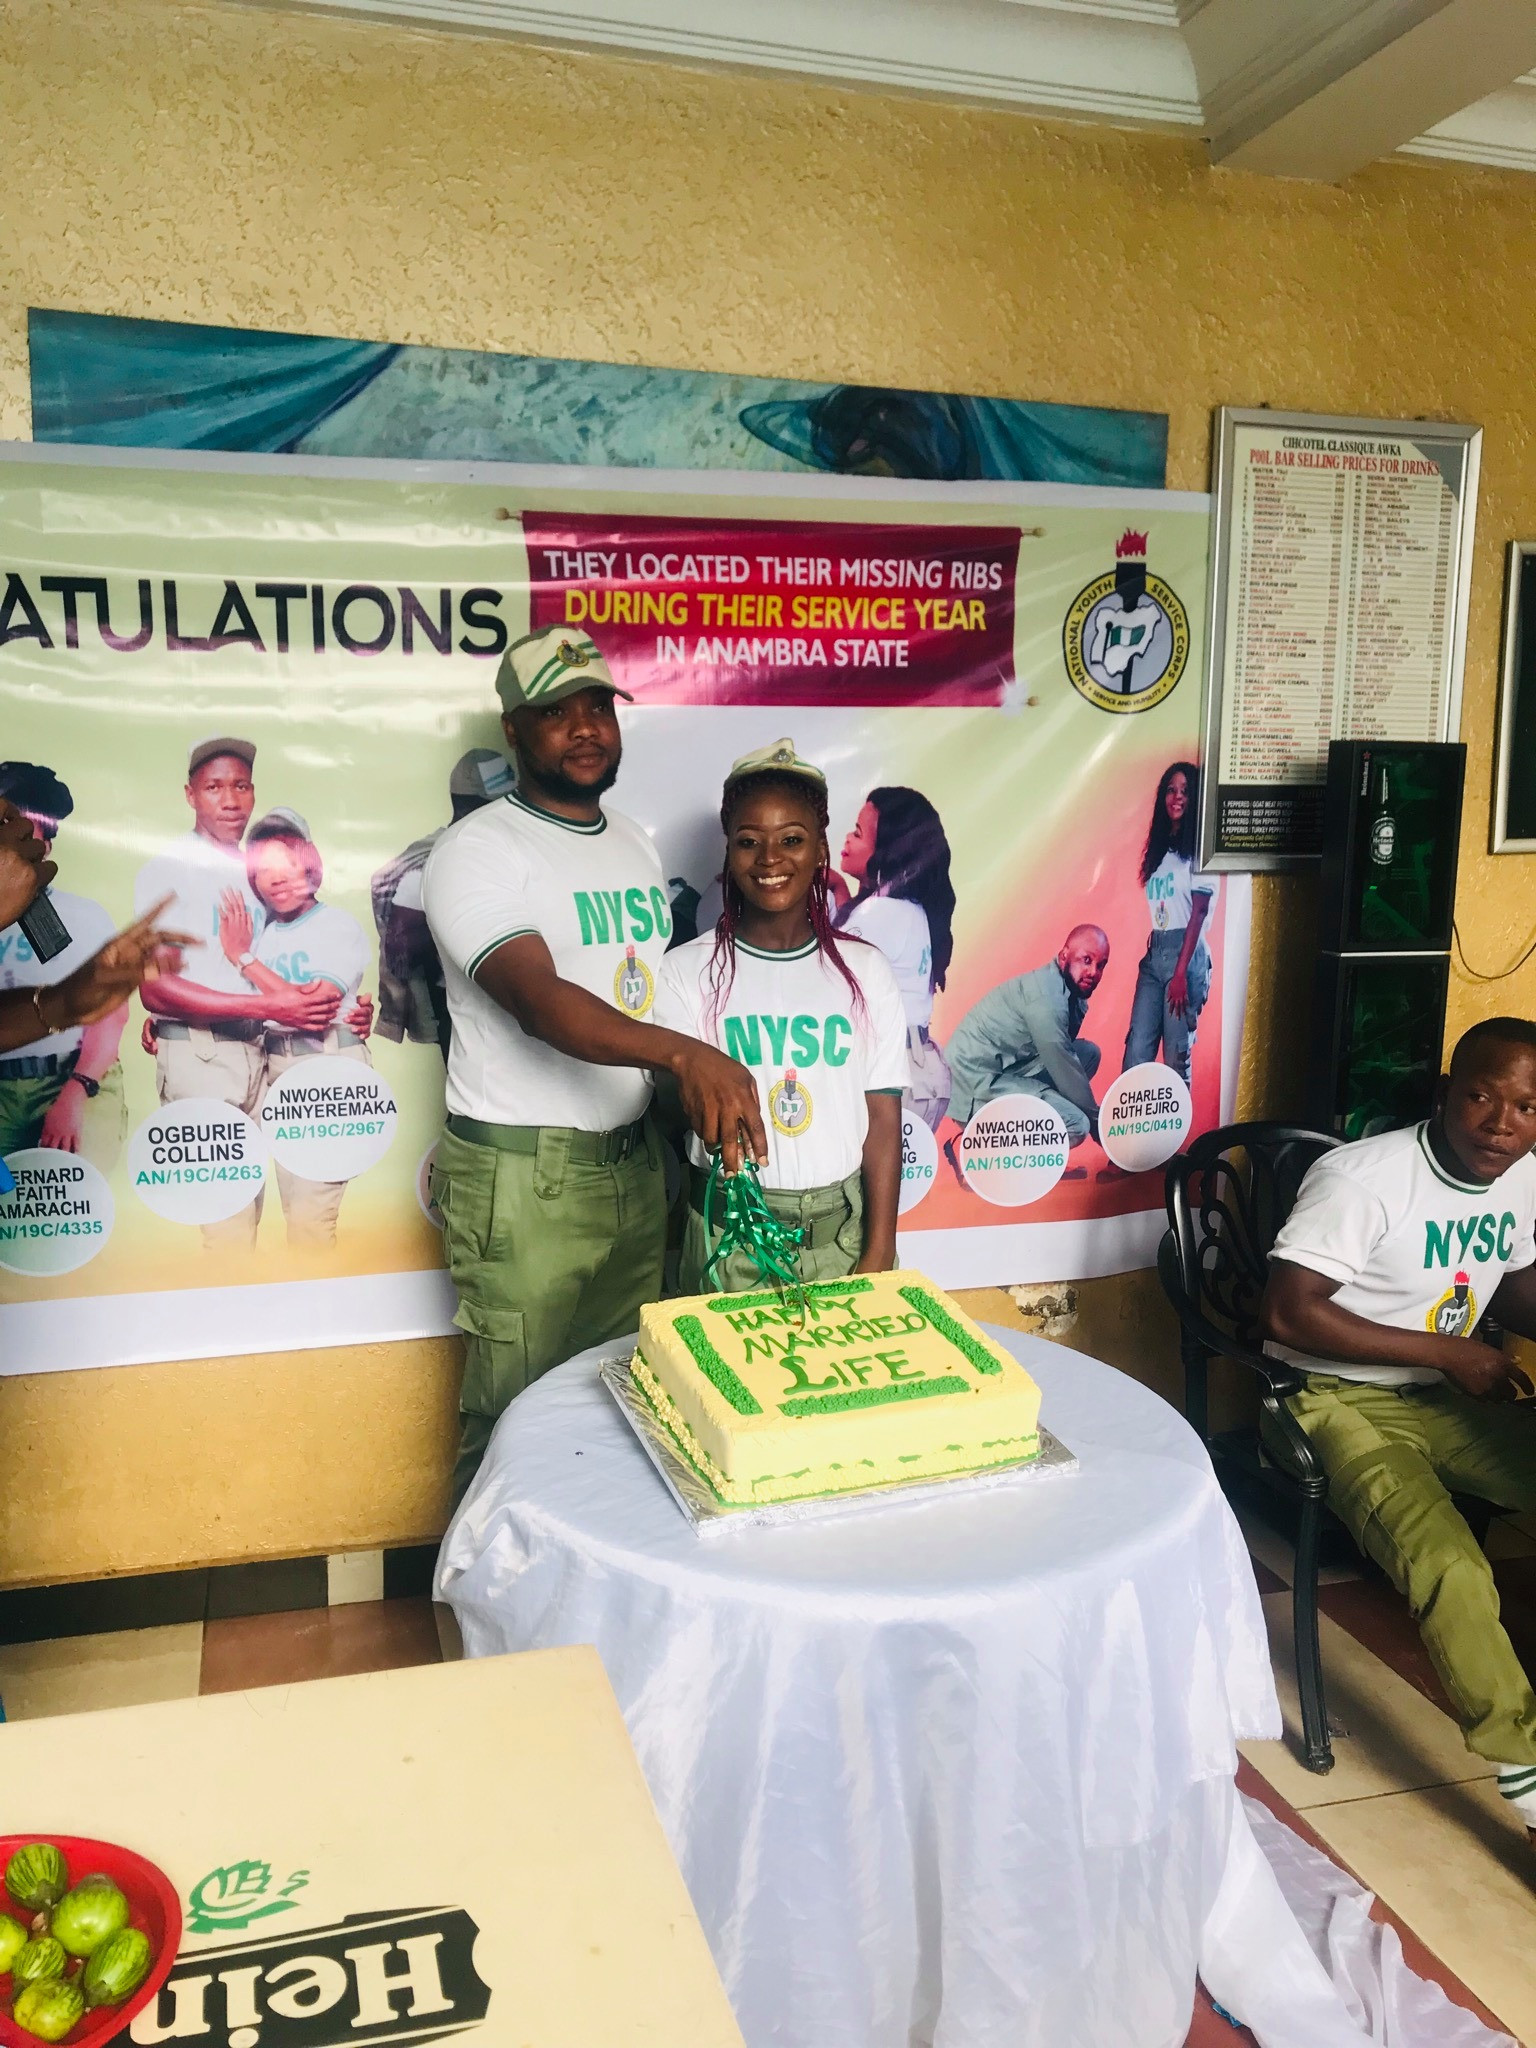 Meet six couples, all 2019 Batch C NYSC members who met and got married during their service year in Anambra